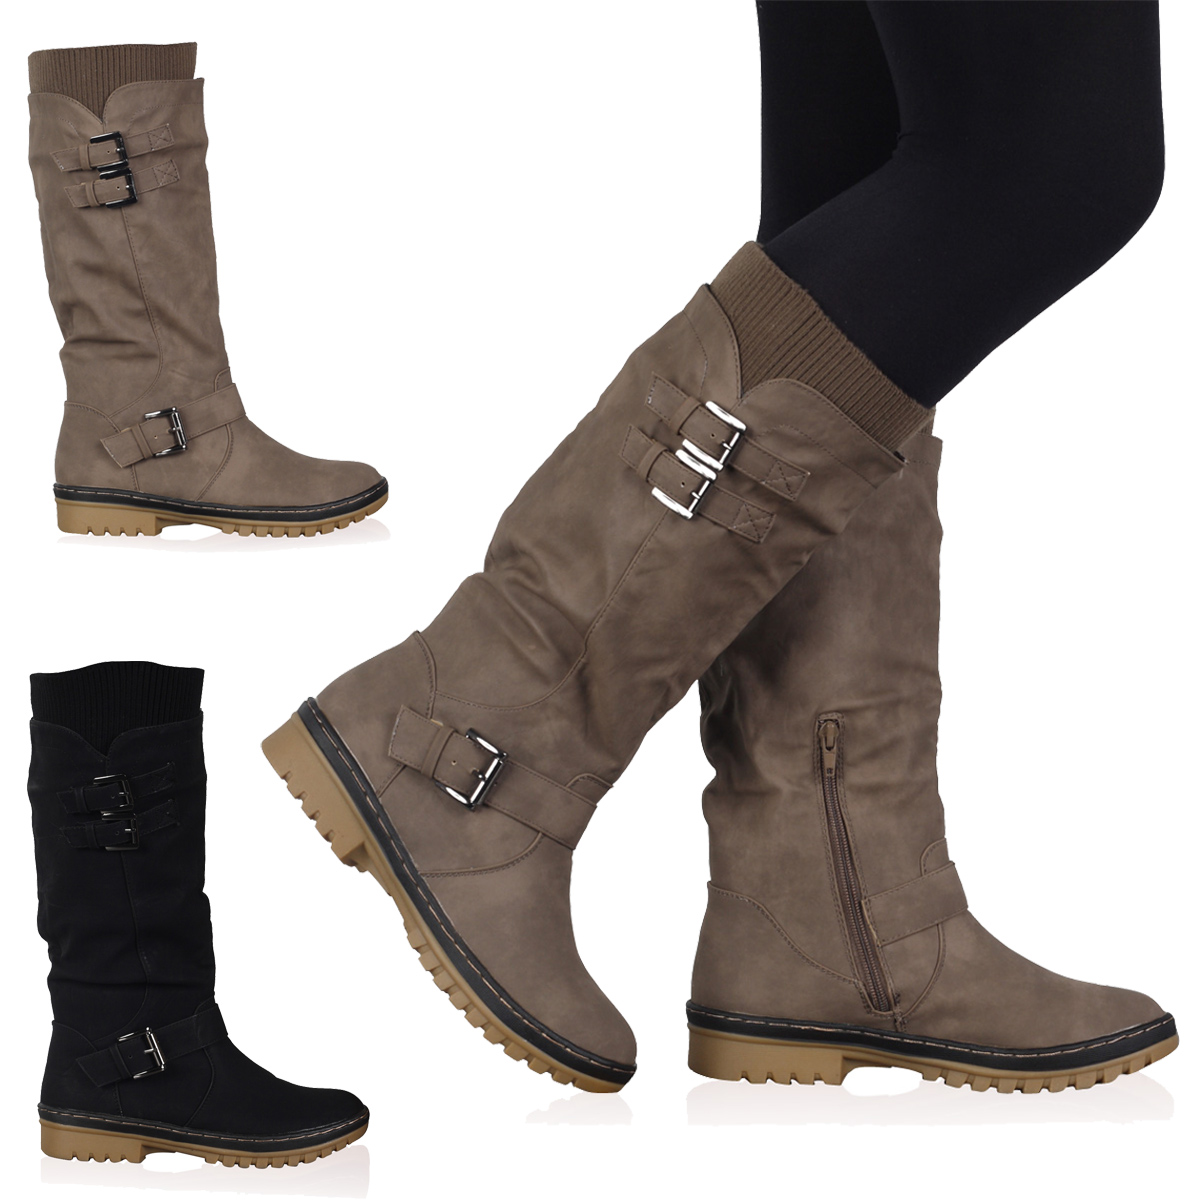 VH6 WOMENS BLACK BUCKLE GRIP SOLE LADIES MID CALF WINTER BOOTS ...